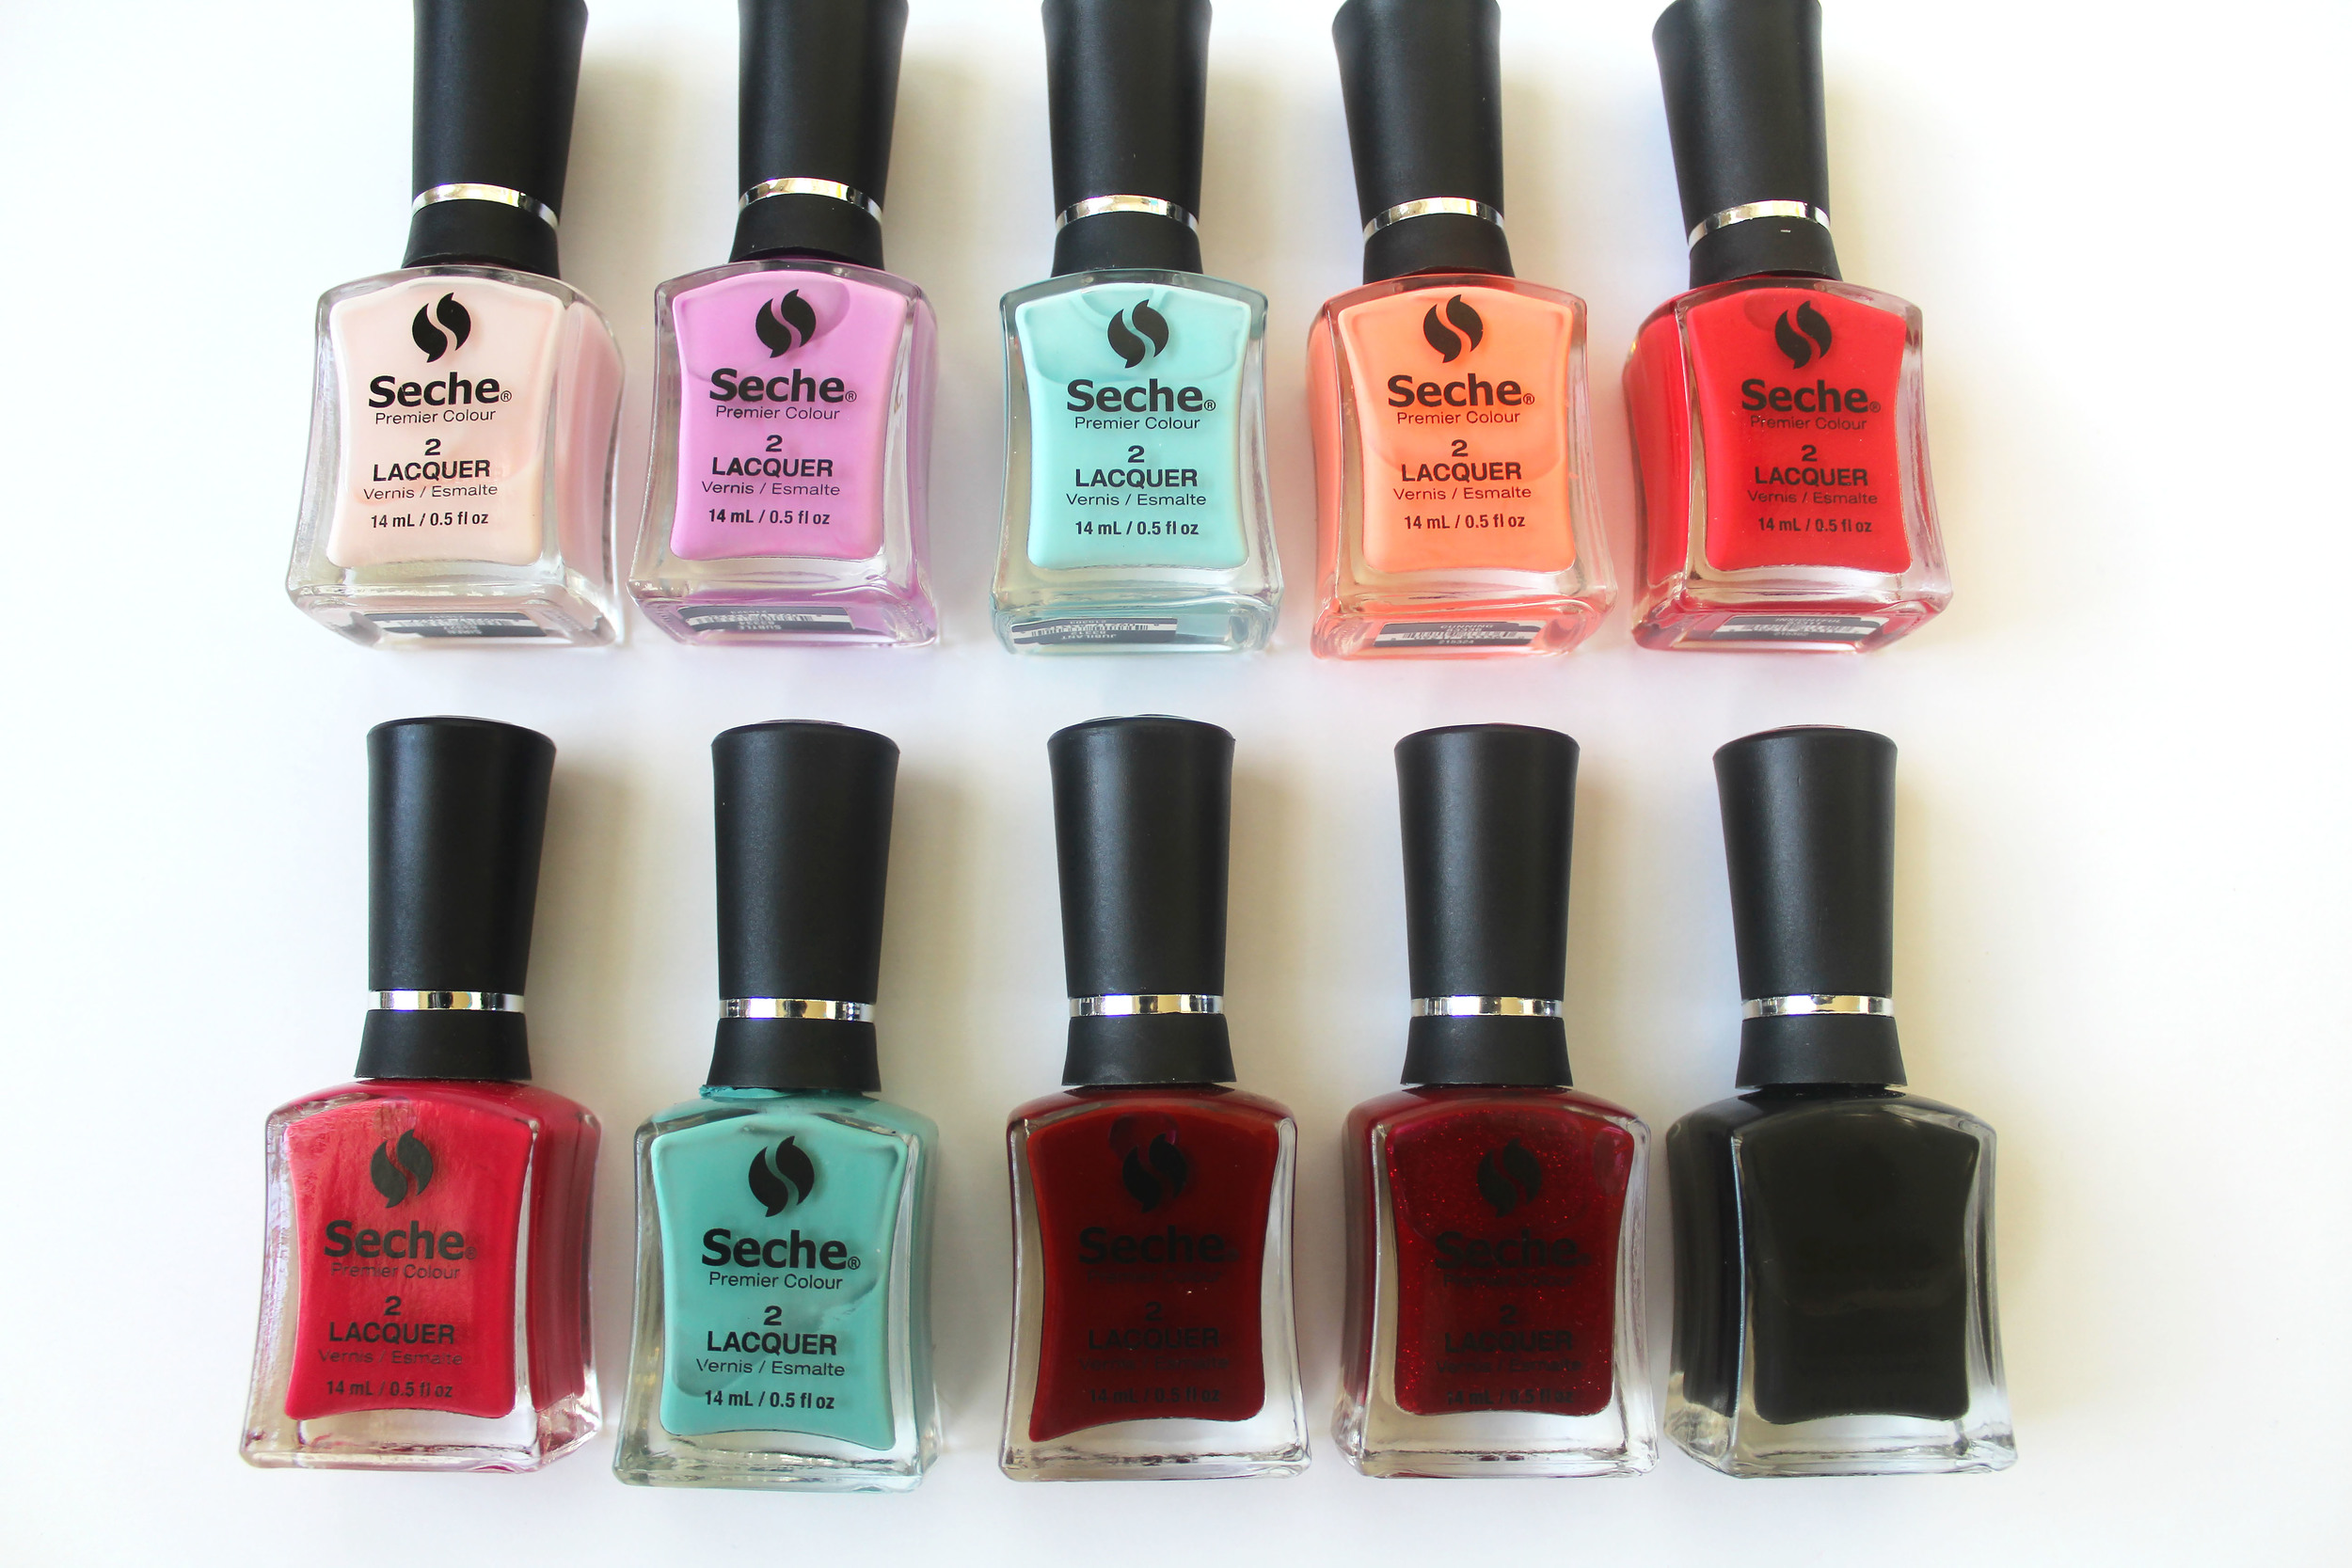 seche premier colour nail polish colors